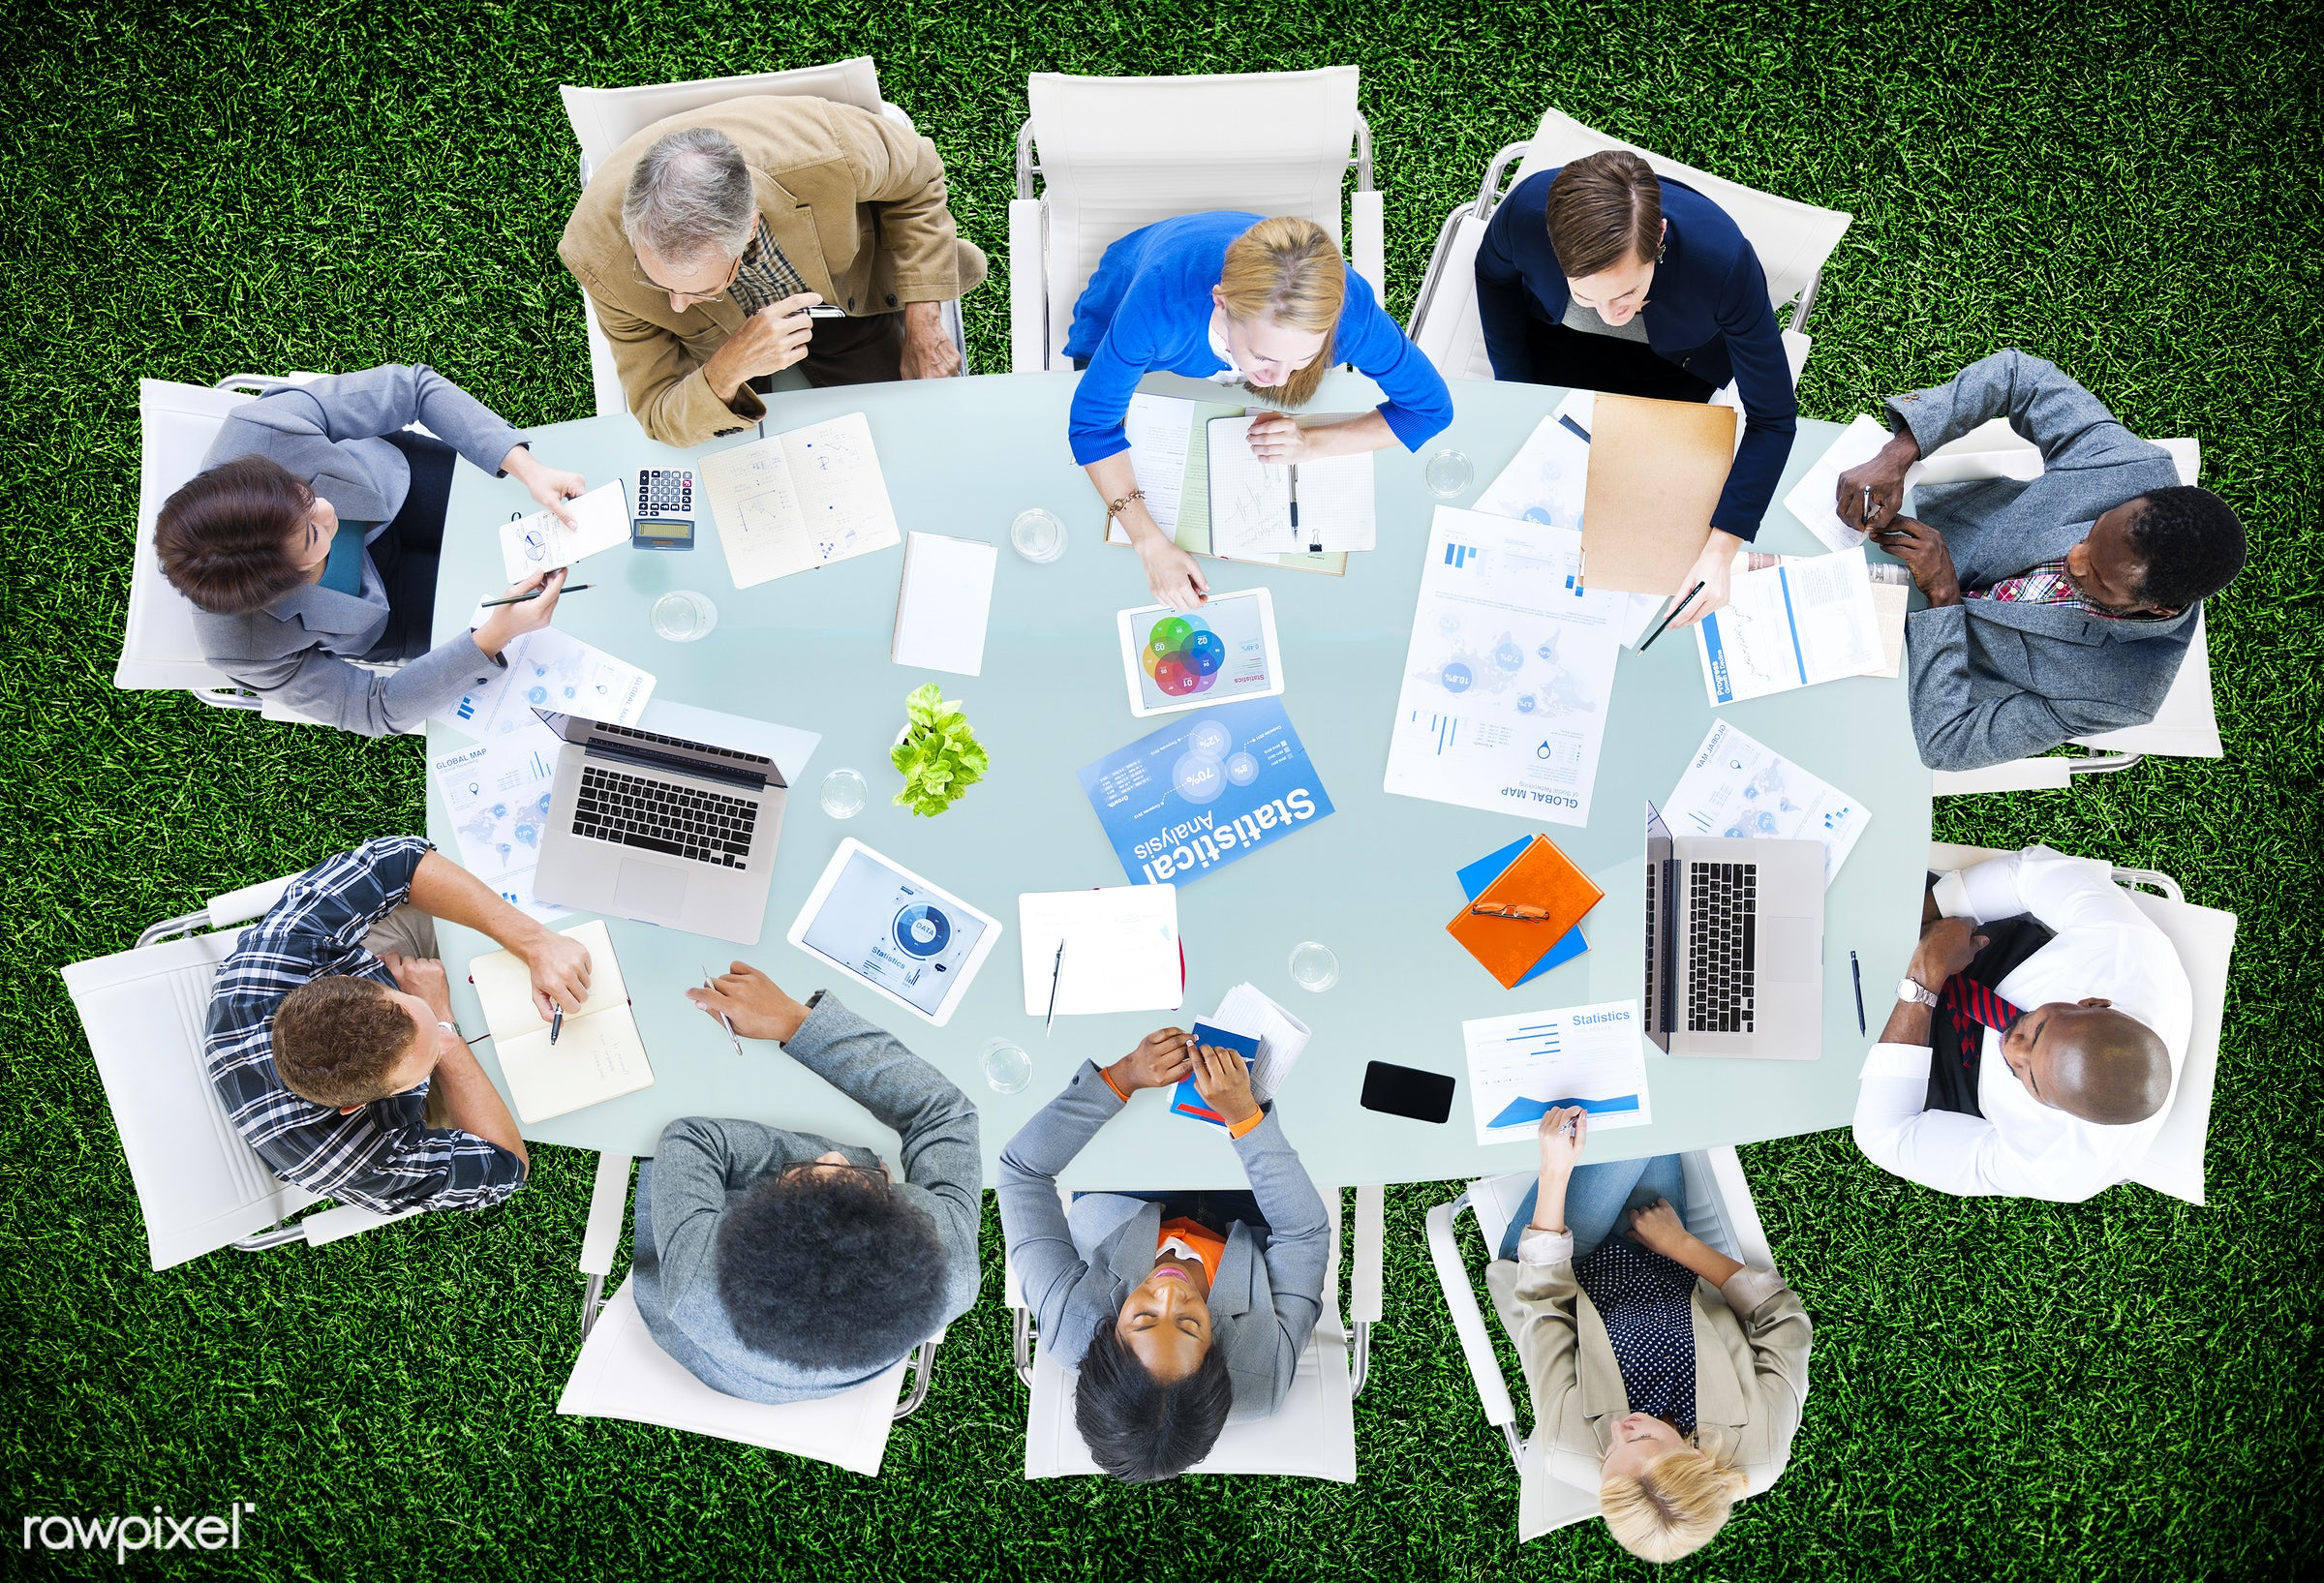 aerial view, backdrop, background, brainstorming, business, business people, businessmen, businesswomen, casual, closeup,...